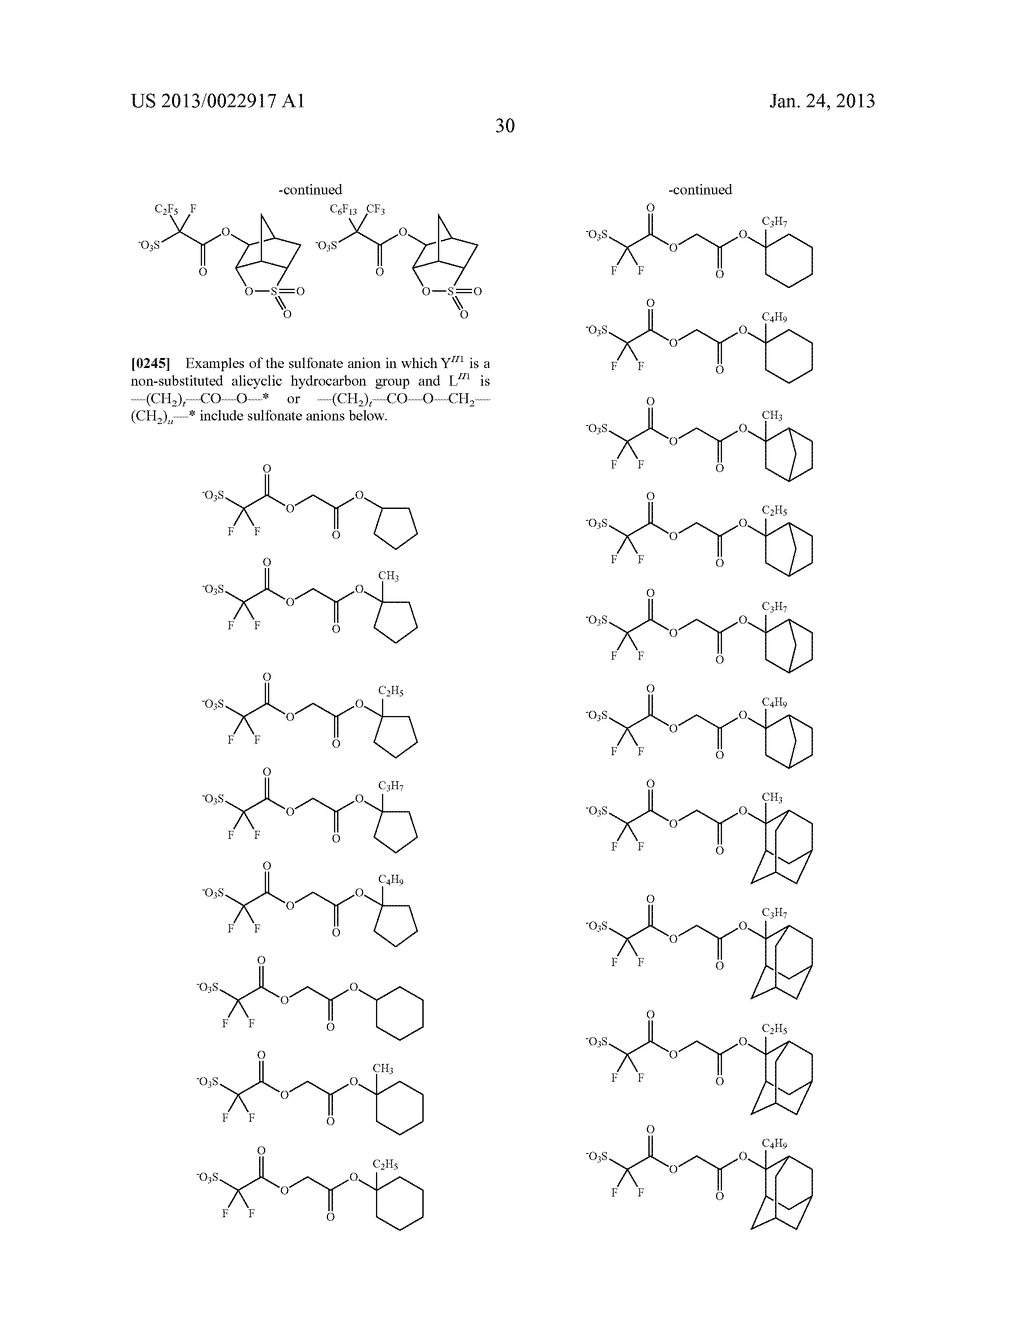 RESIST COMPOSITION AND METHOD FOR PRODUCING RESIST PATTERN - diagram, schematic, and image 31